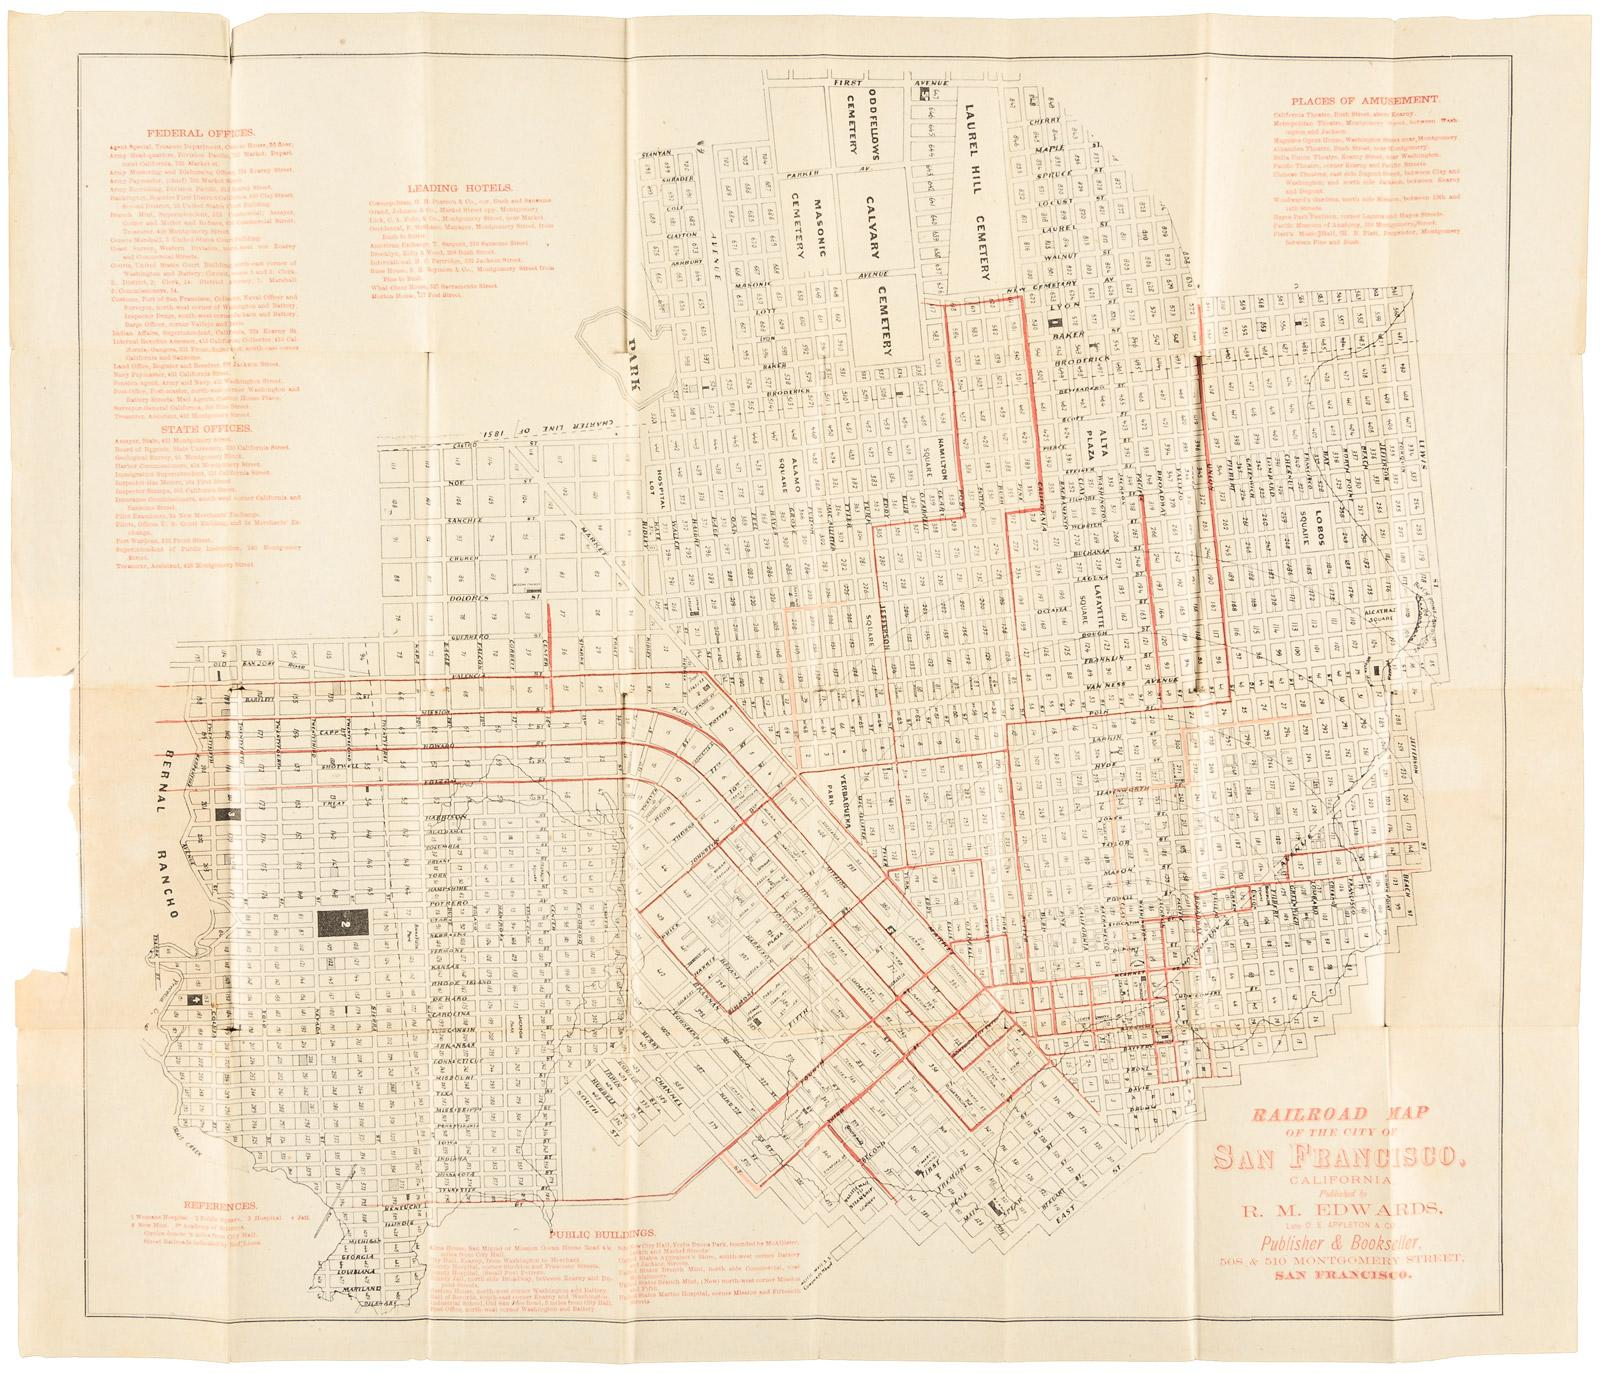 Railroad Map of the City of San Francisco California, Published by on